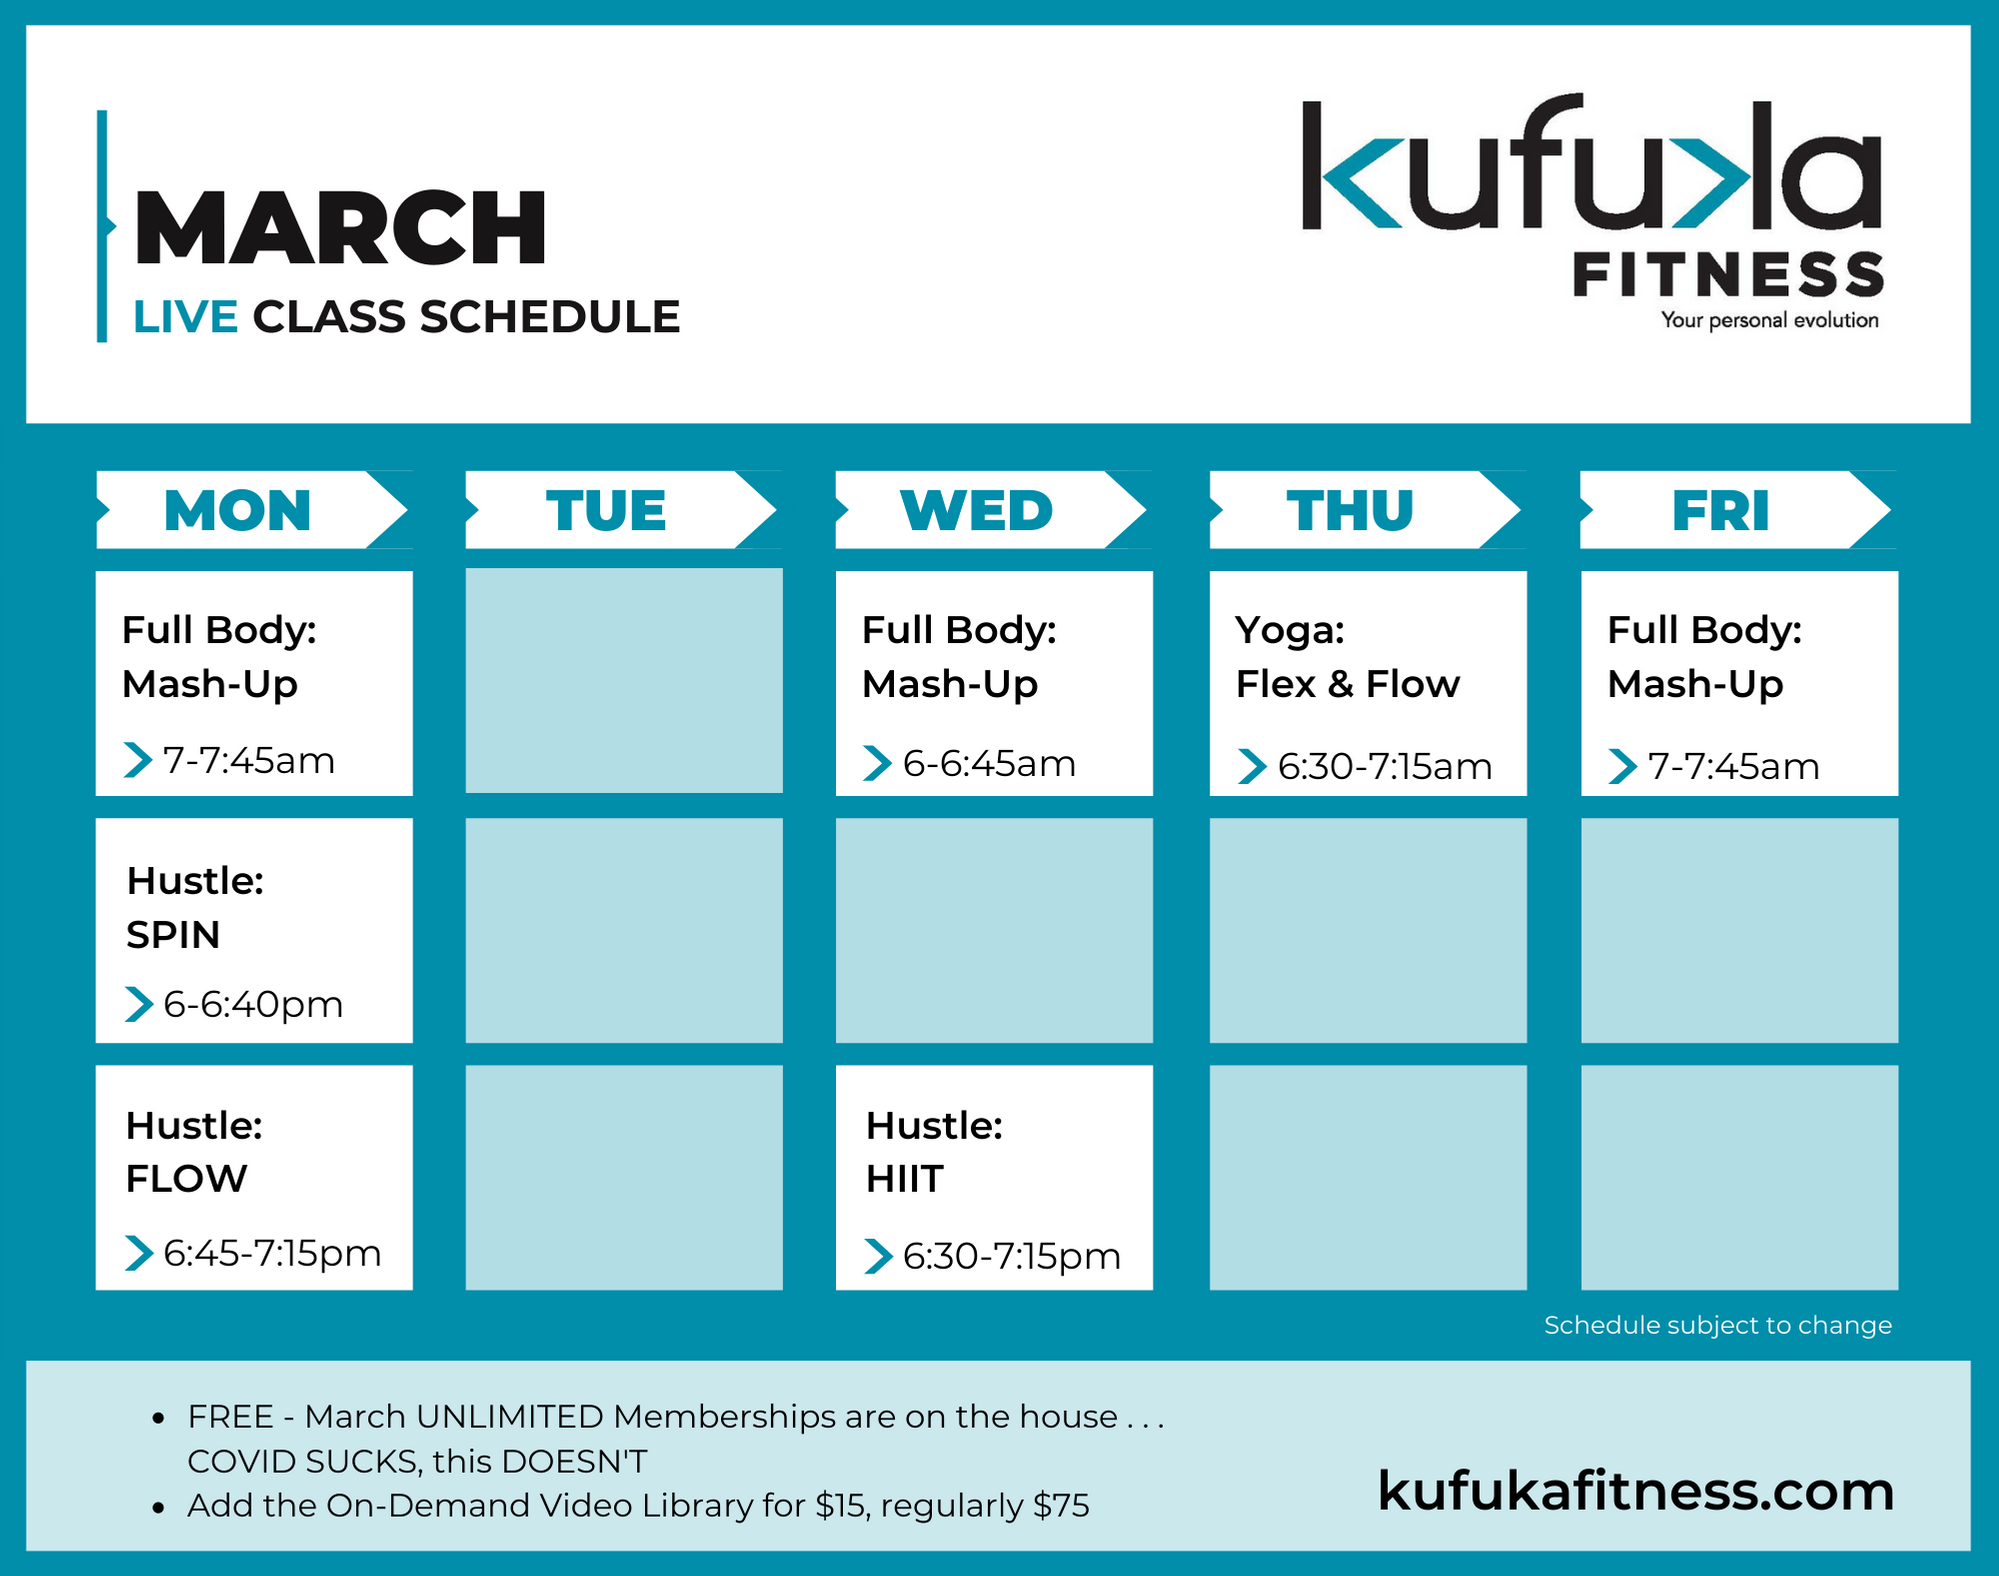 Kufuka Live Online Class Schedule March 2021